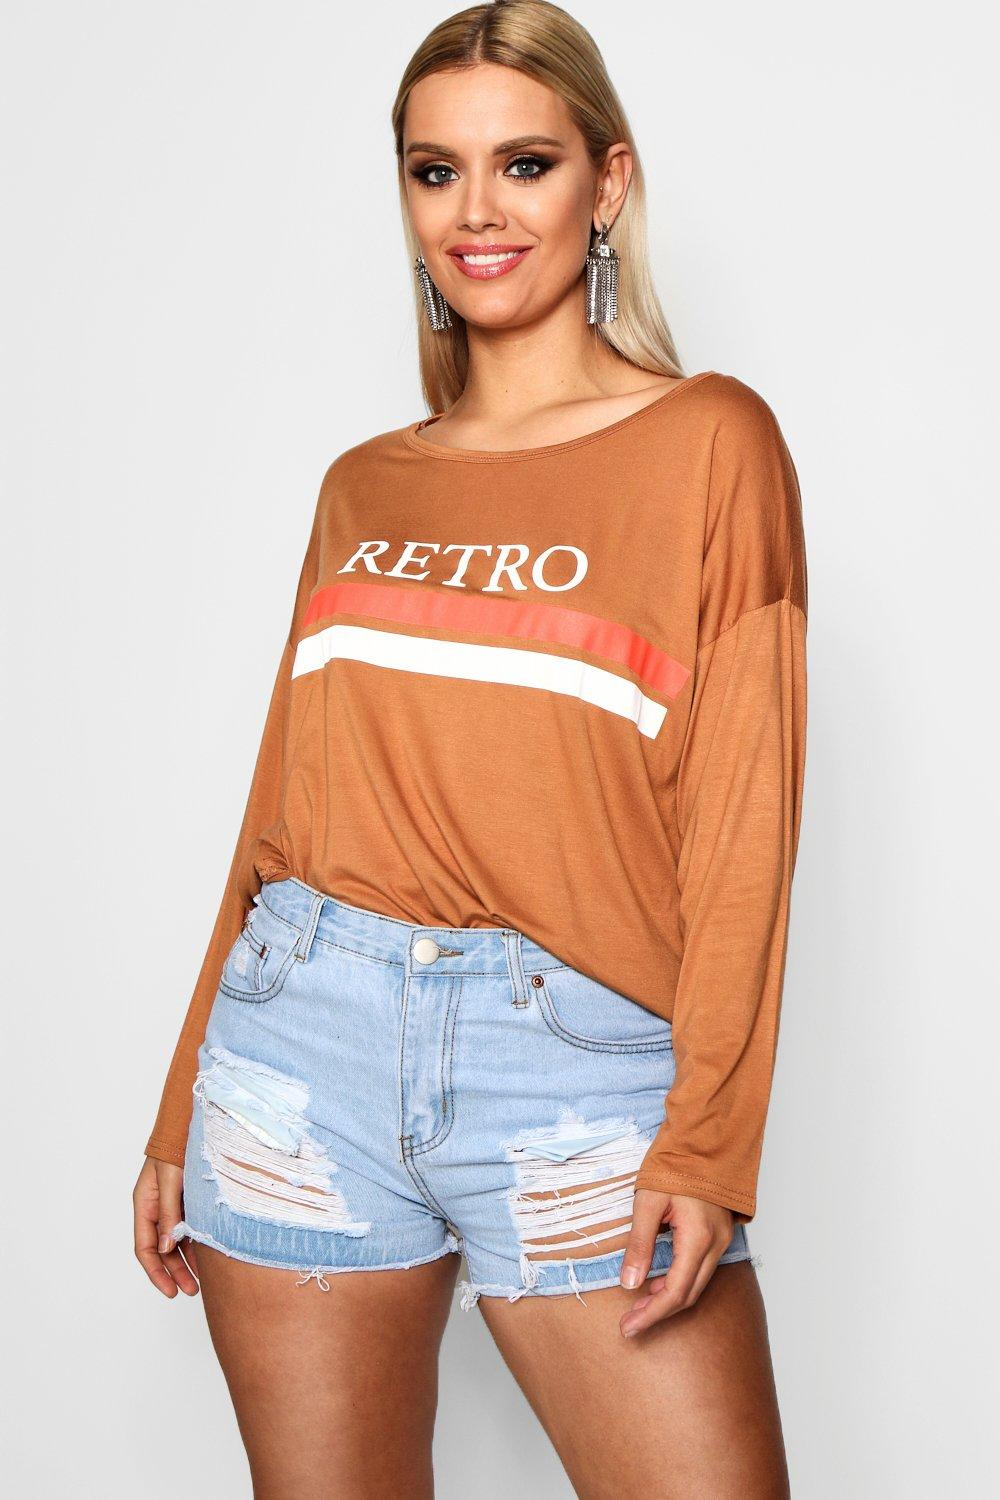 Shirt Stripe T toffee Print Plus 'Retro' ZYq0wPYCv